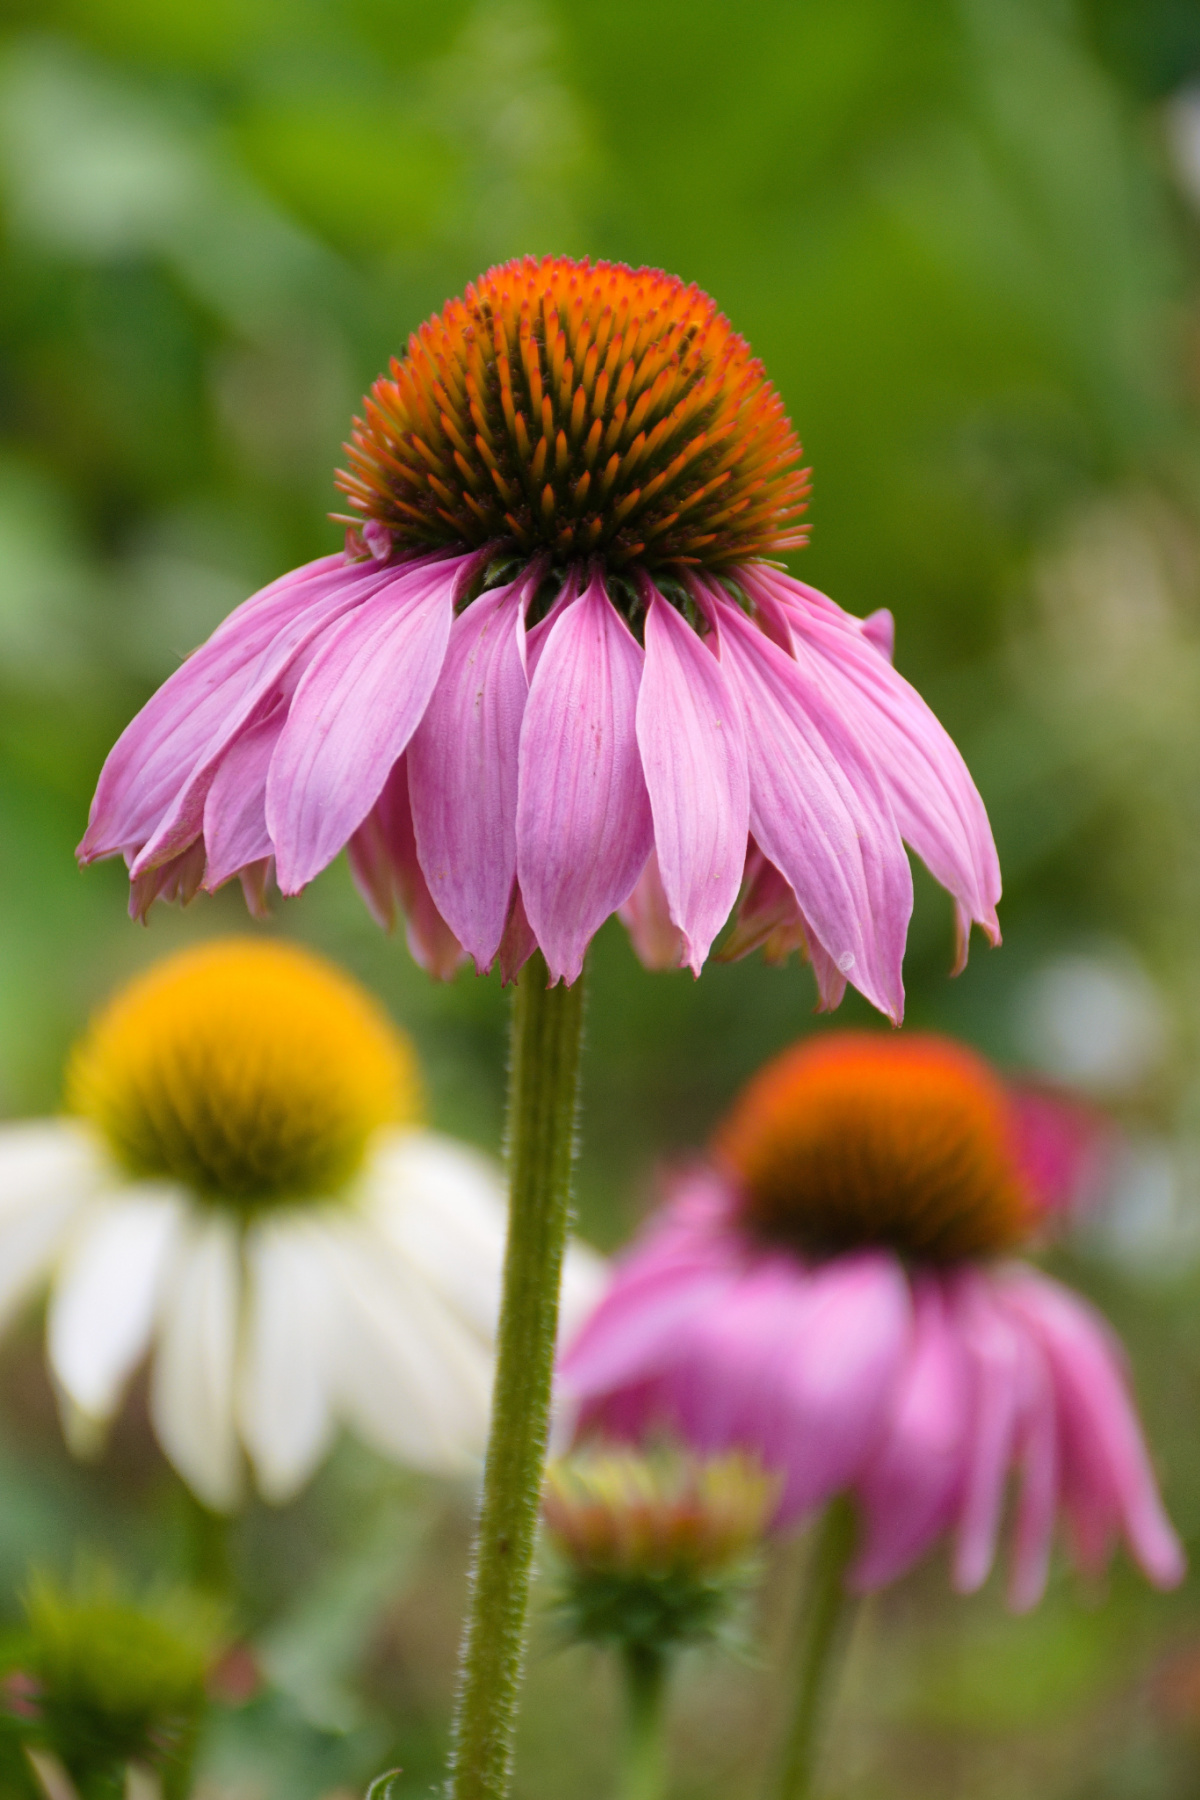 upper part of echinacea plant growing in the wild